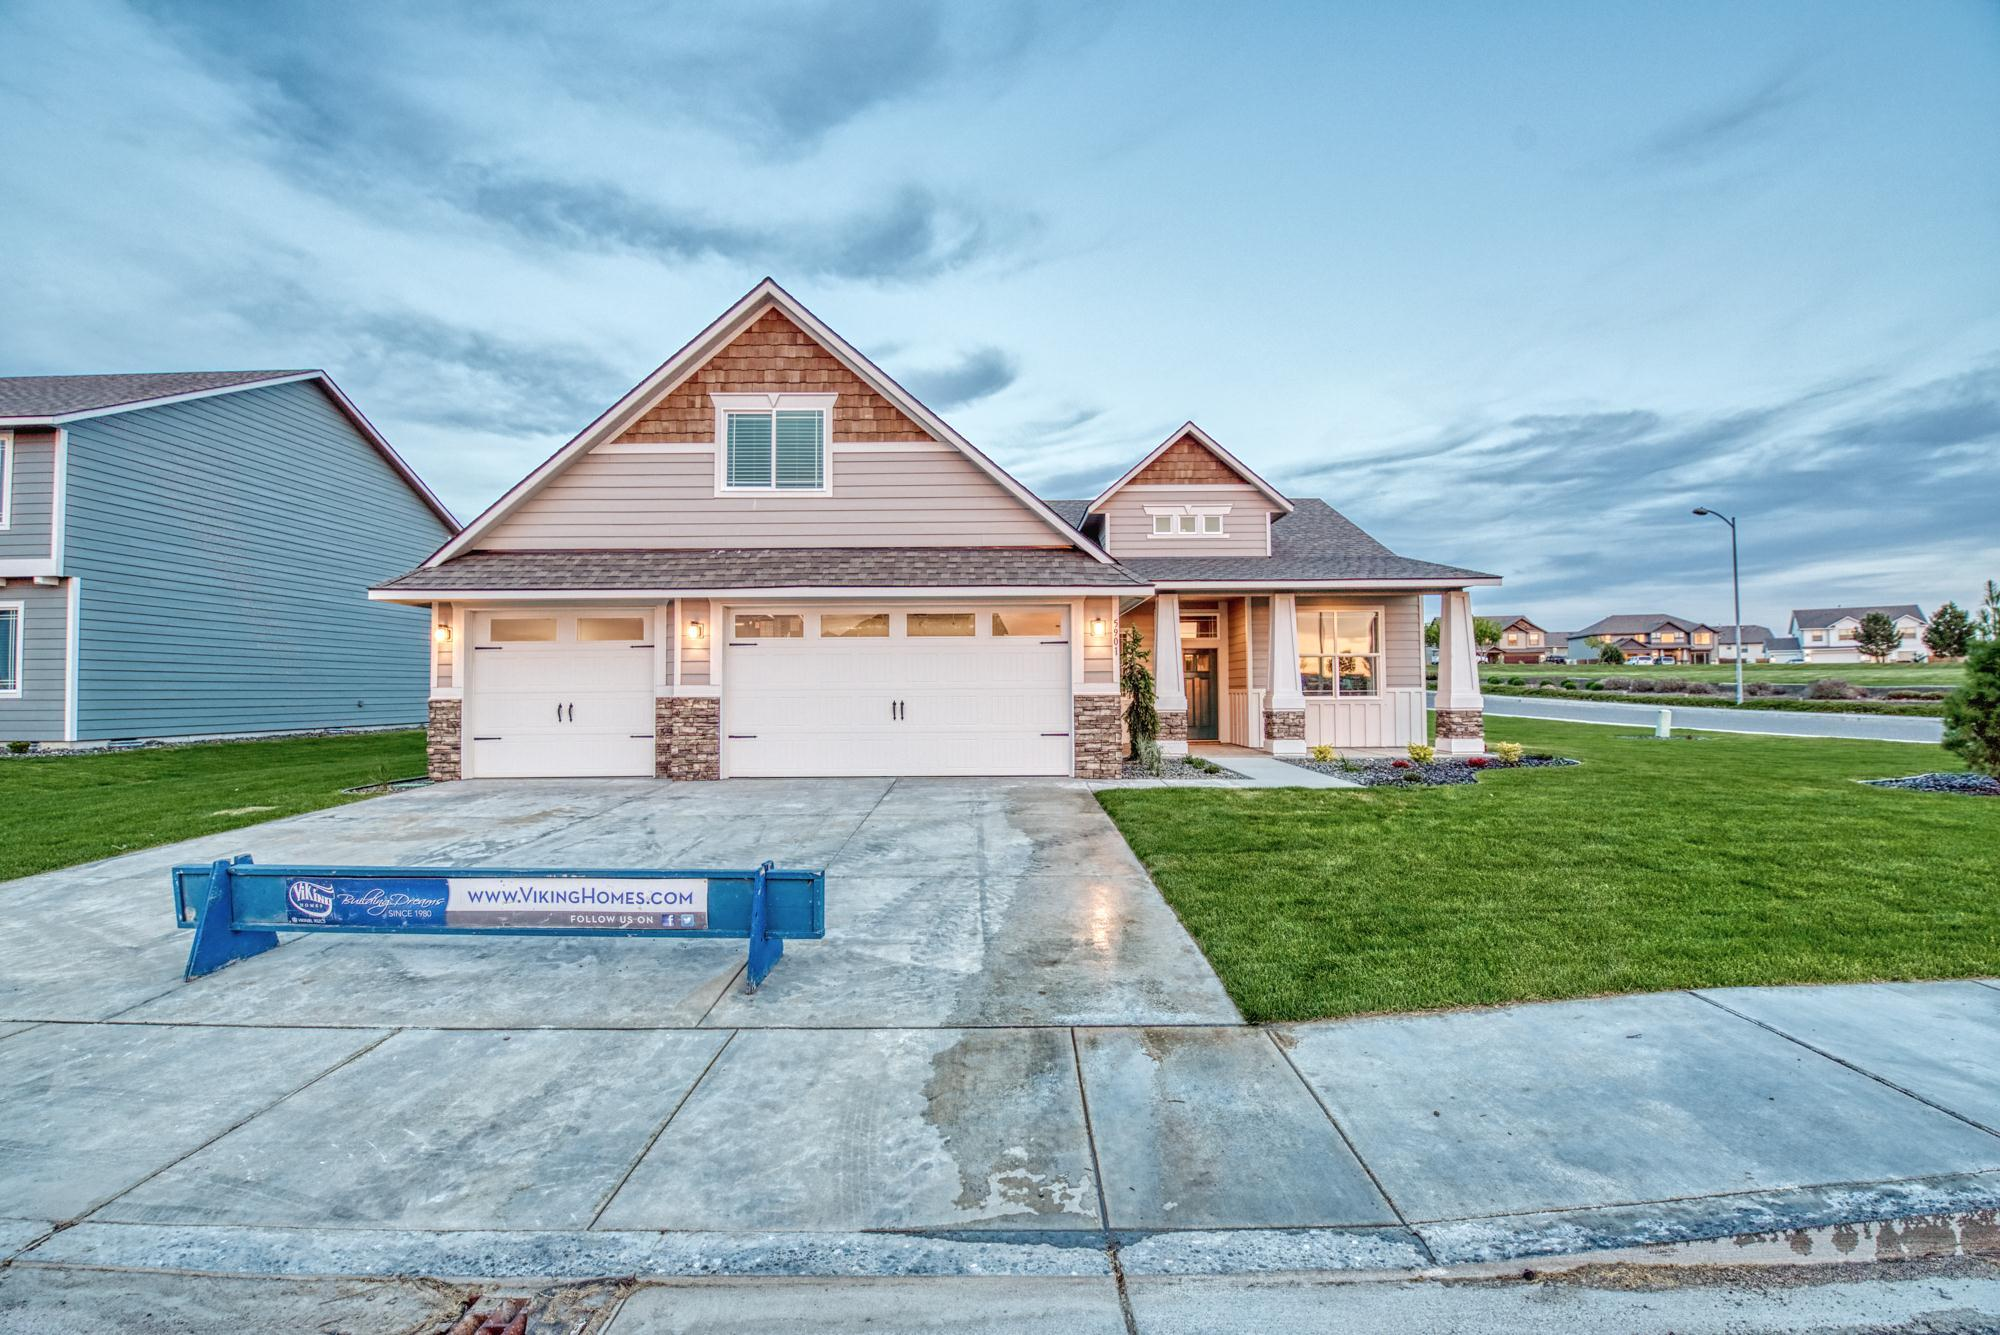 'Madison Park' by RYN Built Homes in Richland